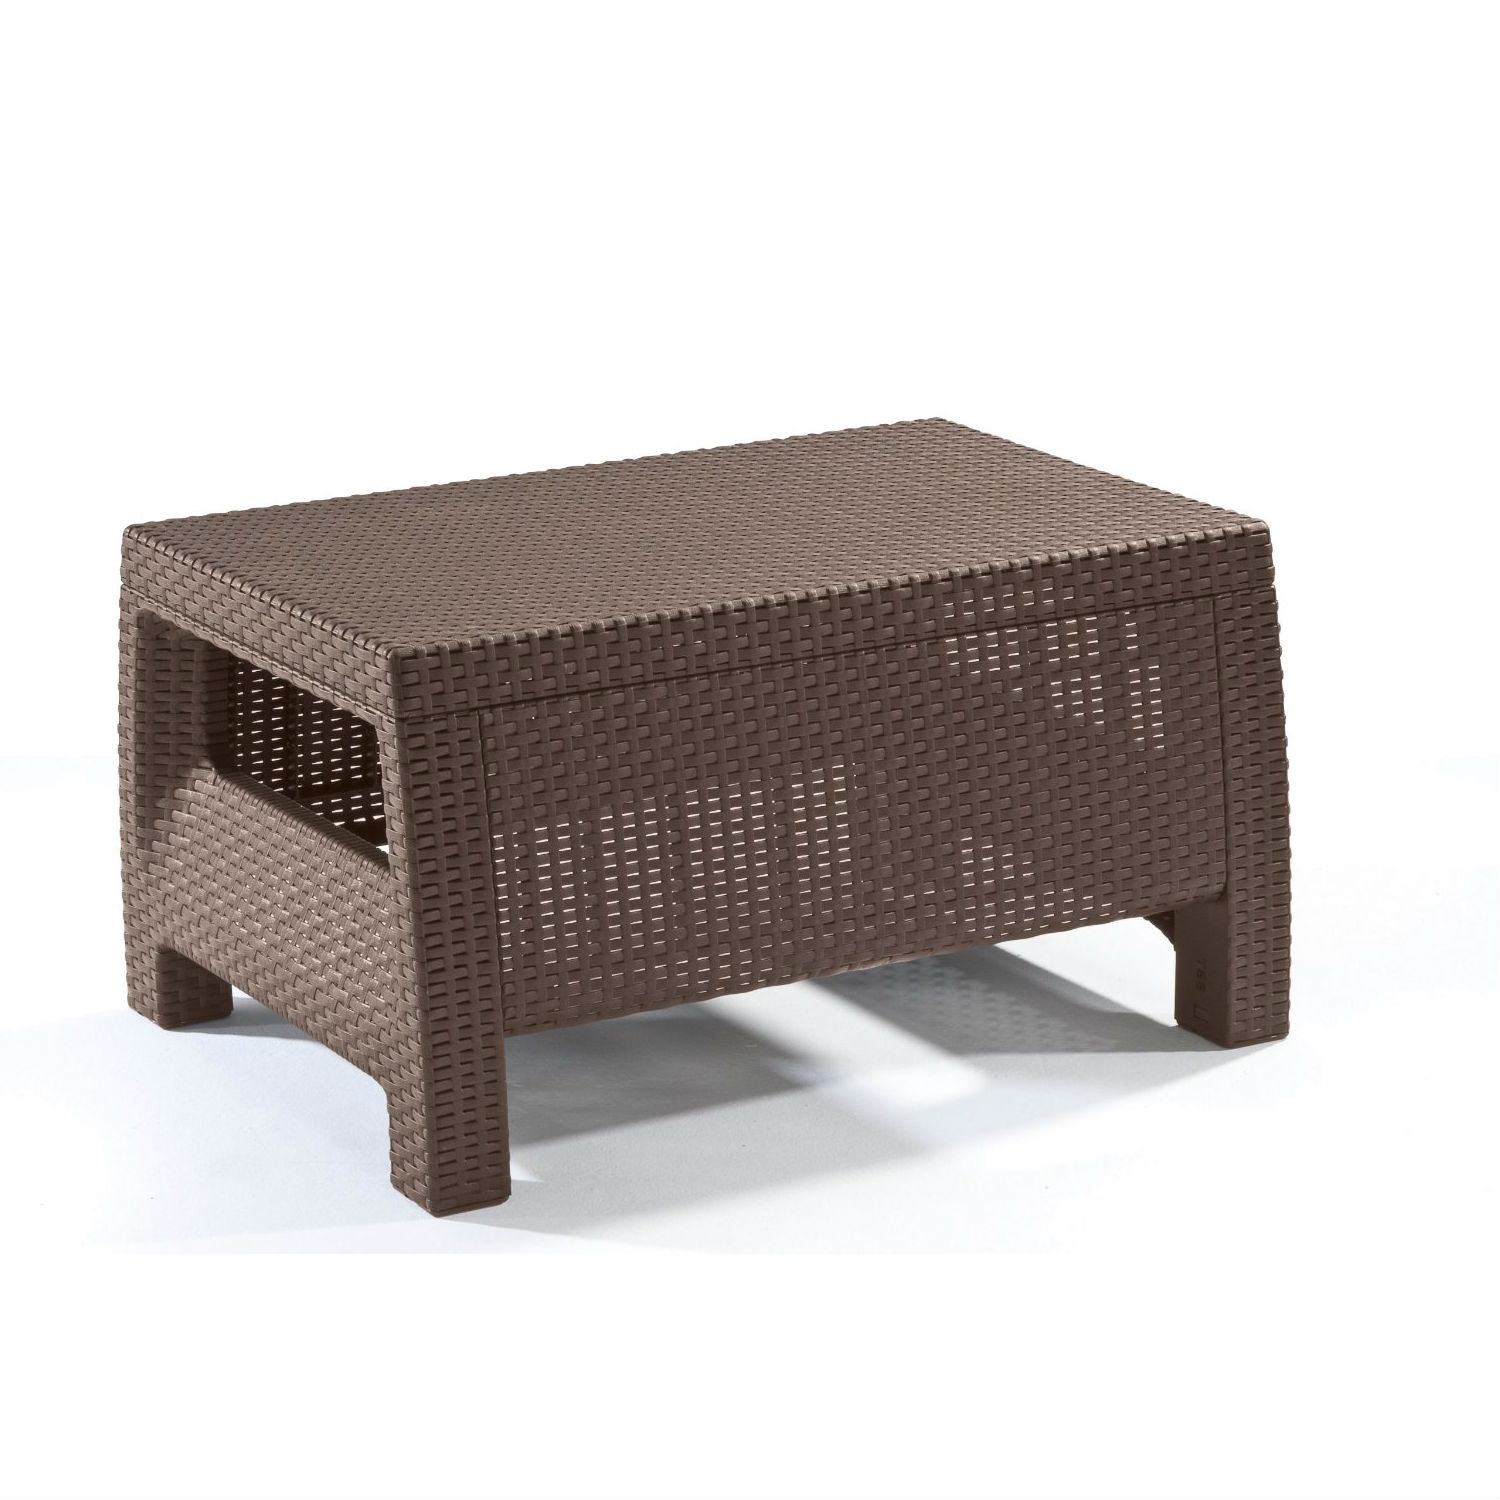 unique end tables diy the fantastic beautiful brown wicker outdoor modern patio table ott weather resistant plastic rattan bedside storage ideas coffee with pop tray runners argos